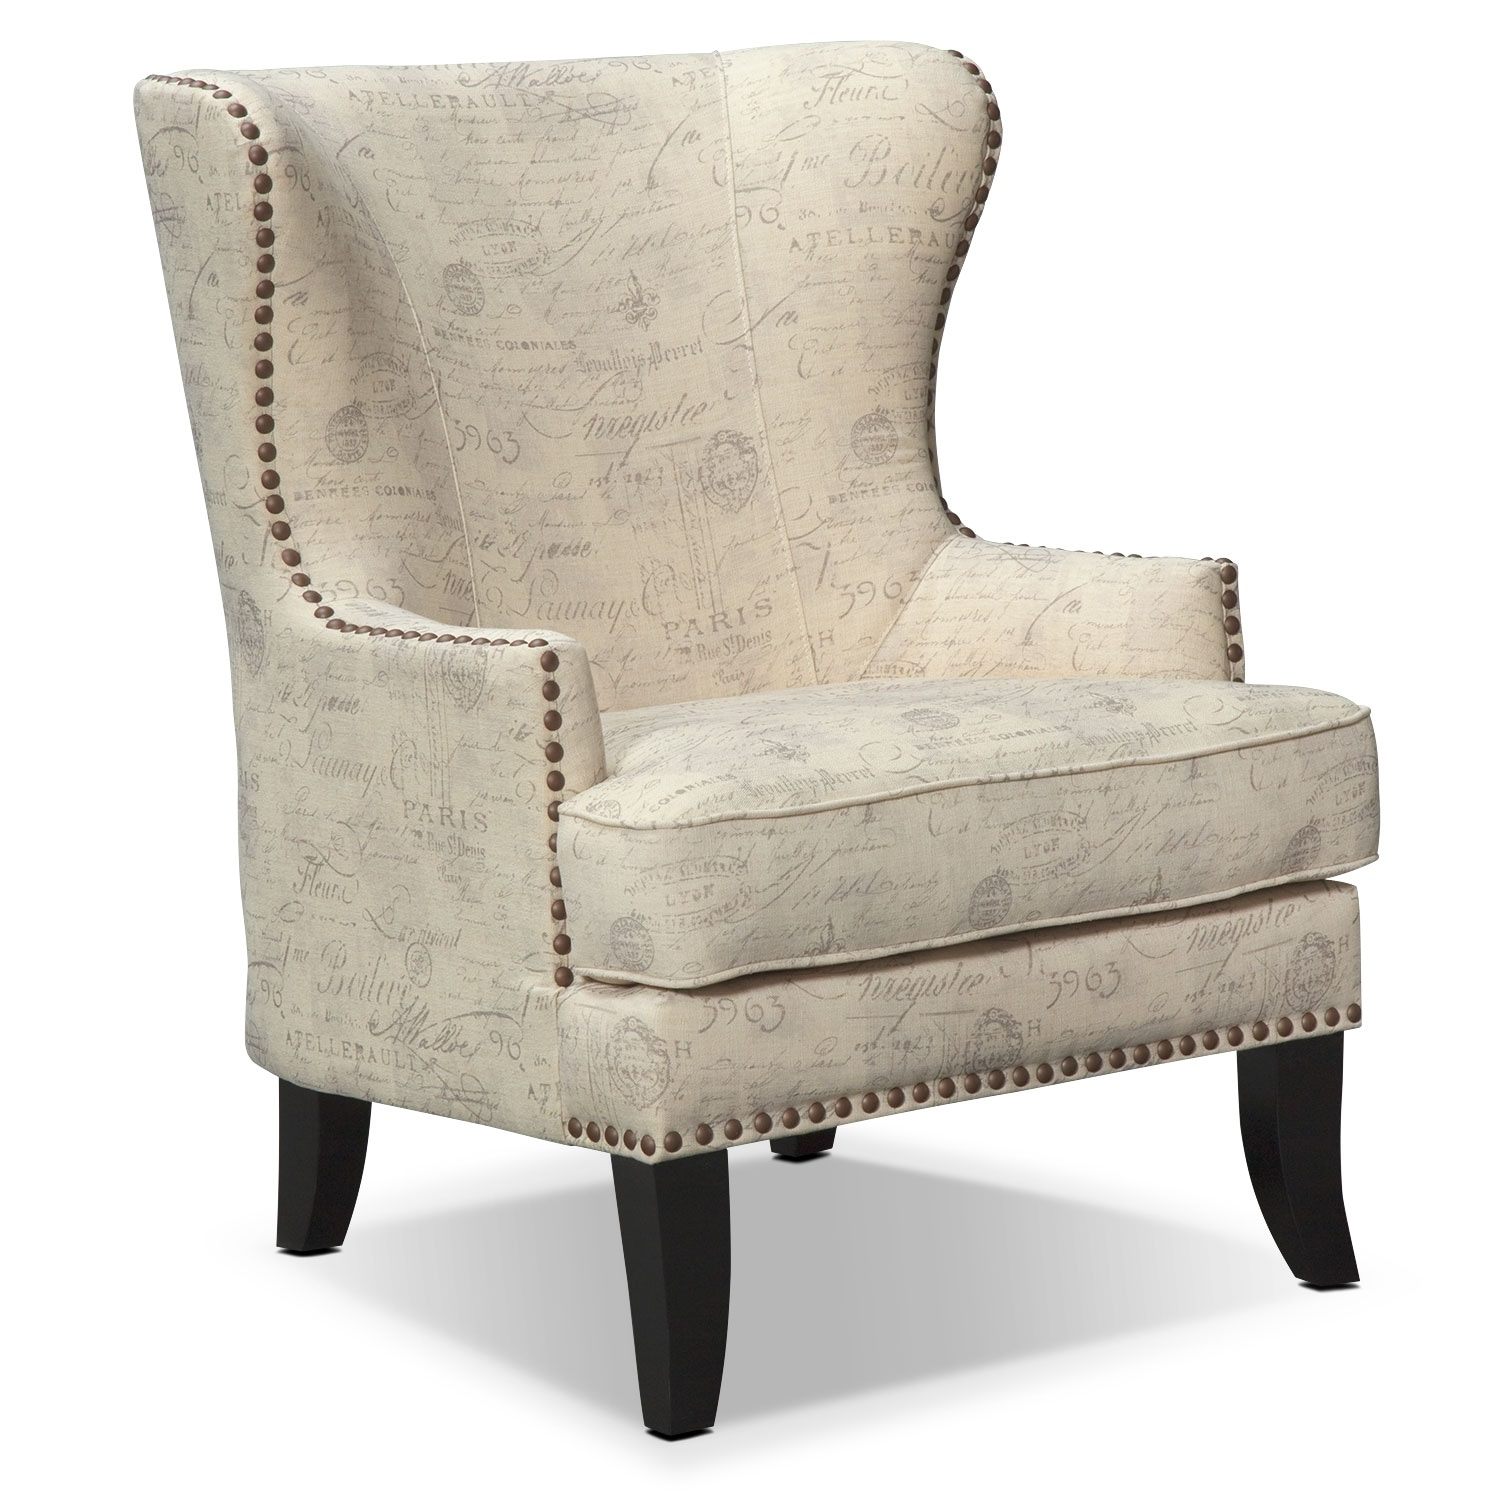 Marseille Accent Chair - Cream and Black - Living Room Chairs & Chaises Value City Furniture Value City